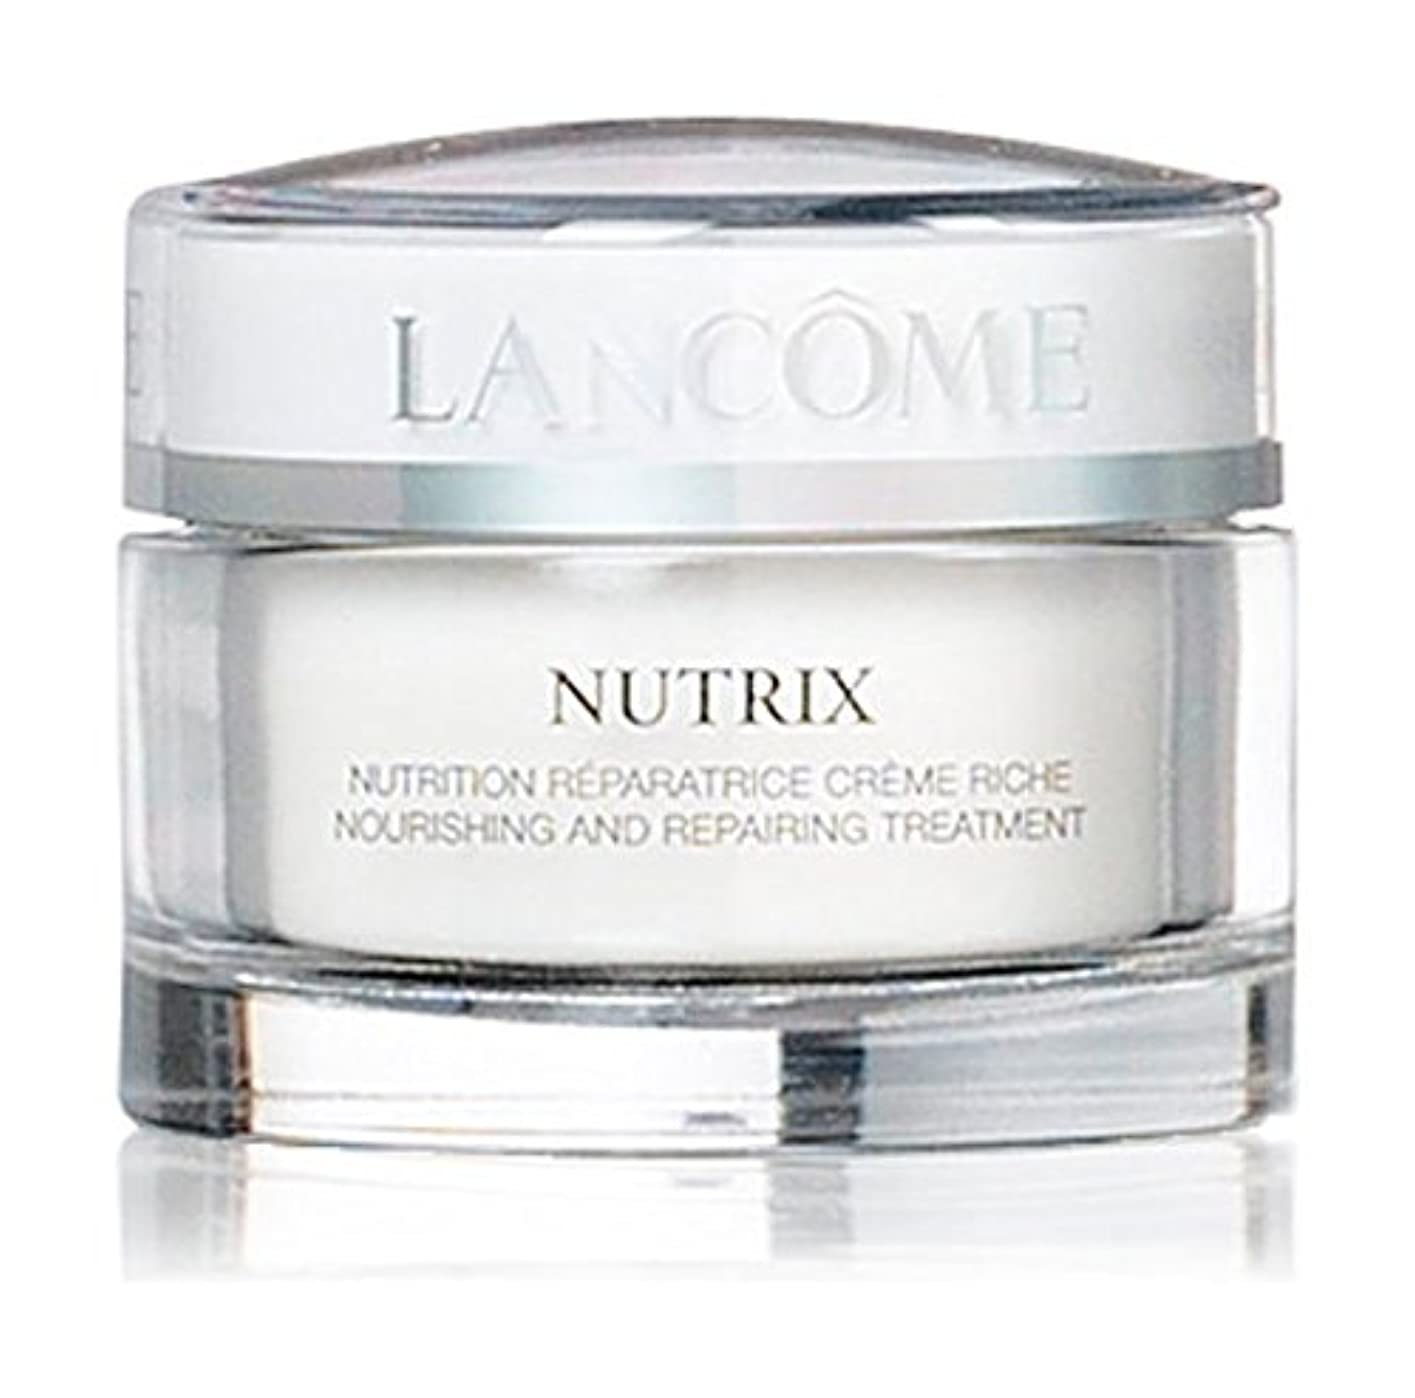 難民意図する追い越すランコム Nutrix Nourishing And Repairing Treatment Rich Cream - For Very Dry, Sensitive Or Irritated Skin 50ml/1.7oz...